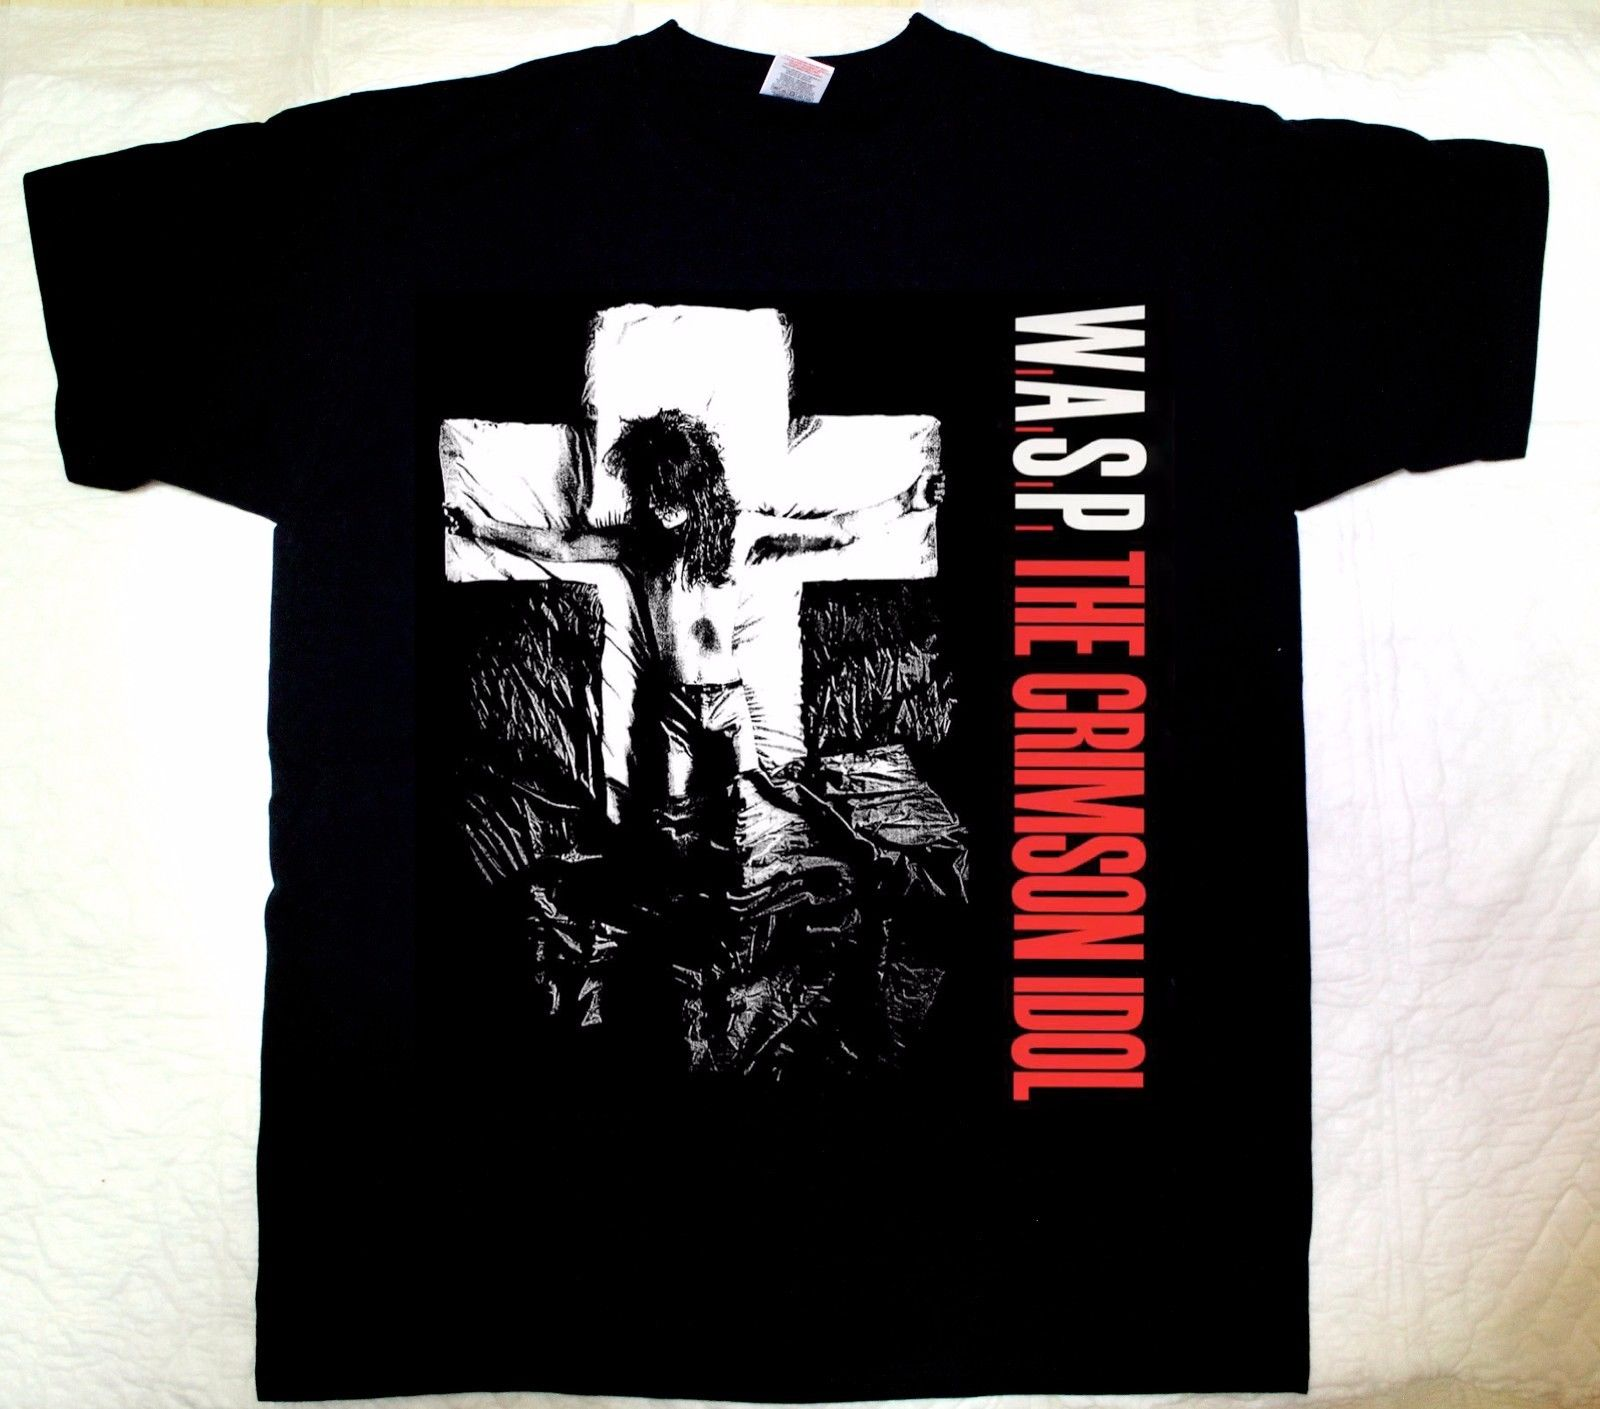 W.A.S.P. CRIMSON IDOL'92 HEAVY METAL BAND WASP TWISTED SISTER NEW BLACK T-SHIRT 2019 Hot Sale New Men'S T Shirt